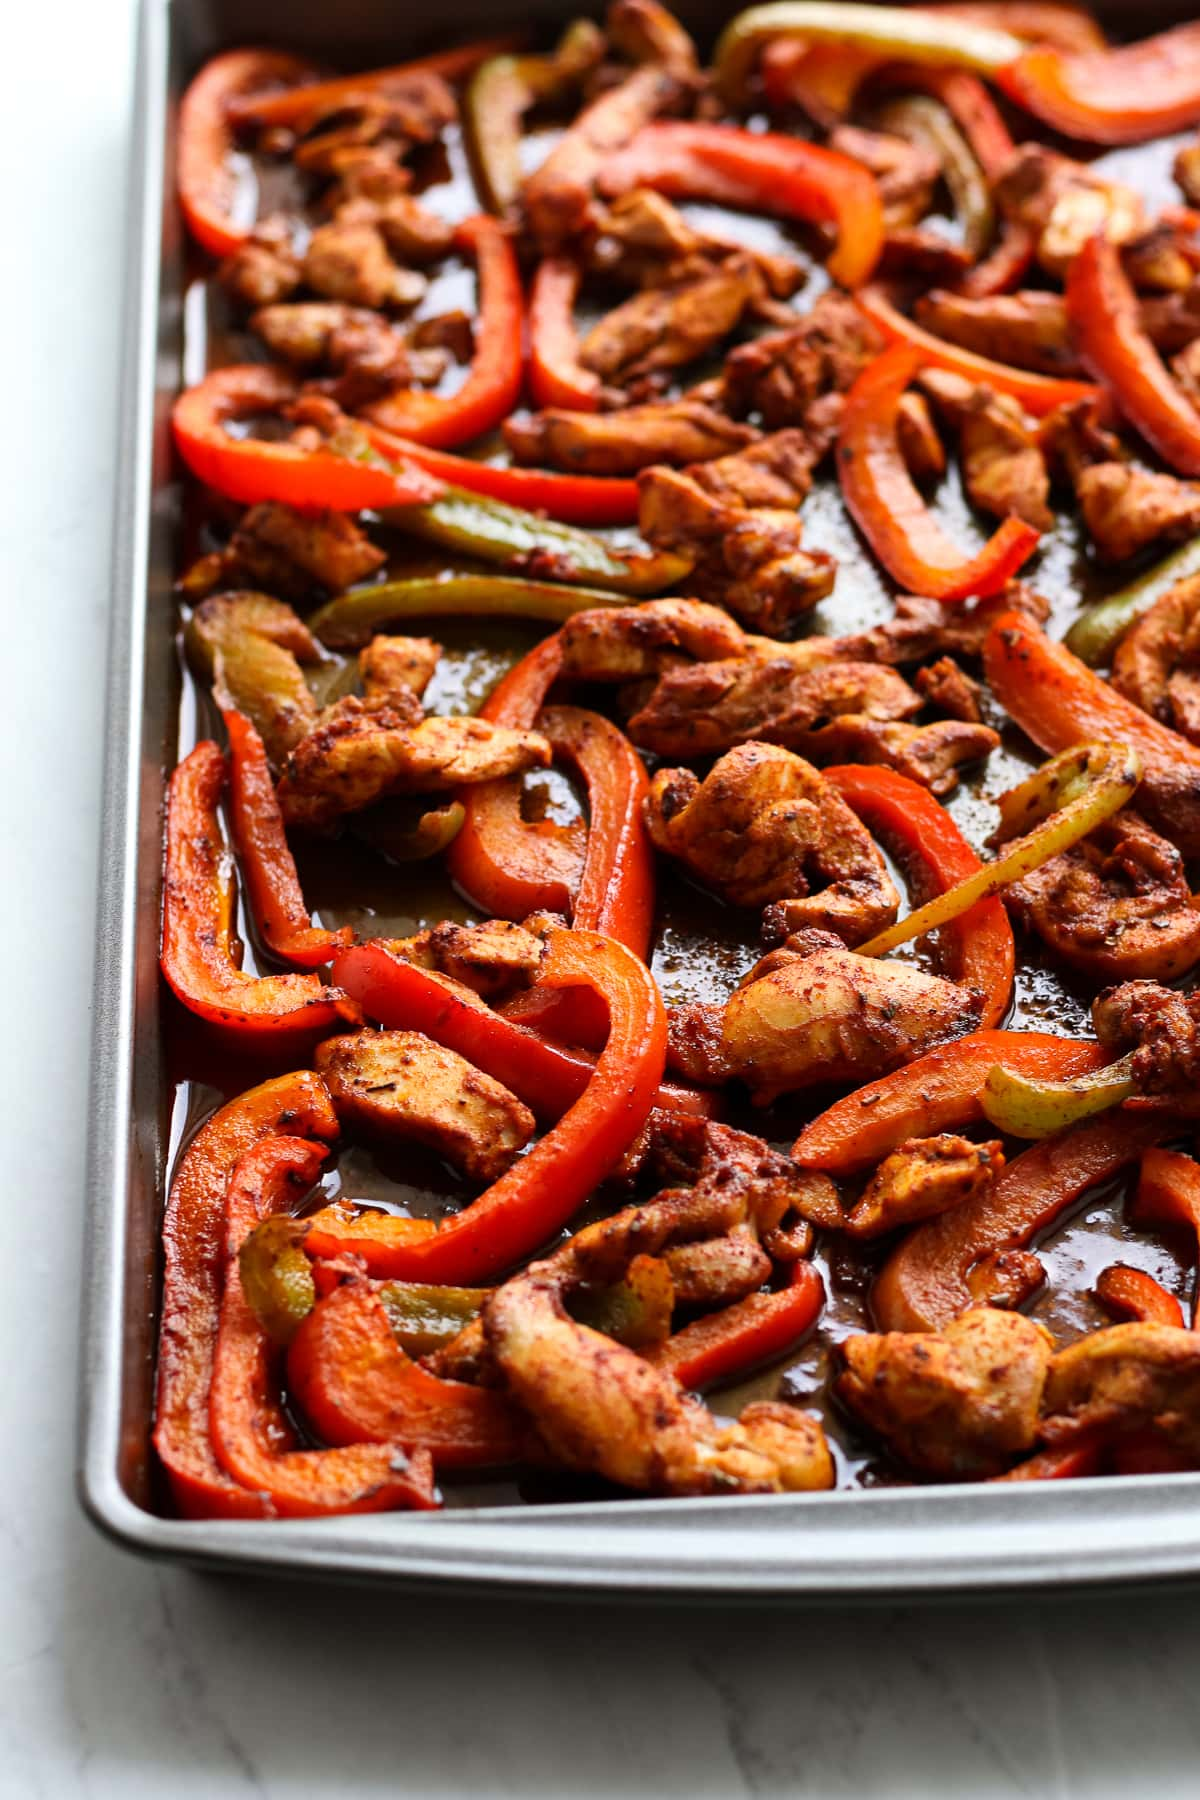 A sheet pan filled with baked chicken thigh slices and sliced red and green bell peppers.